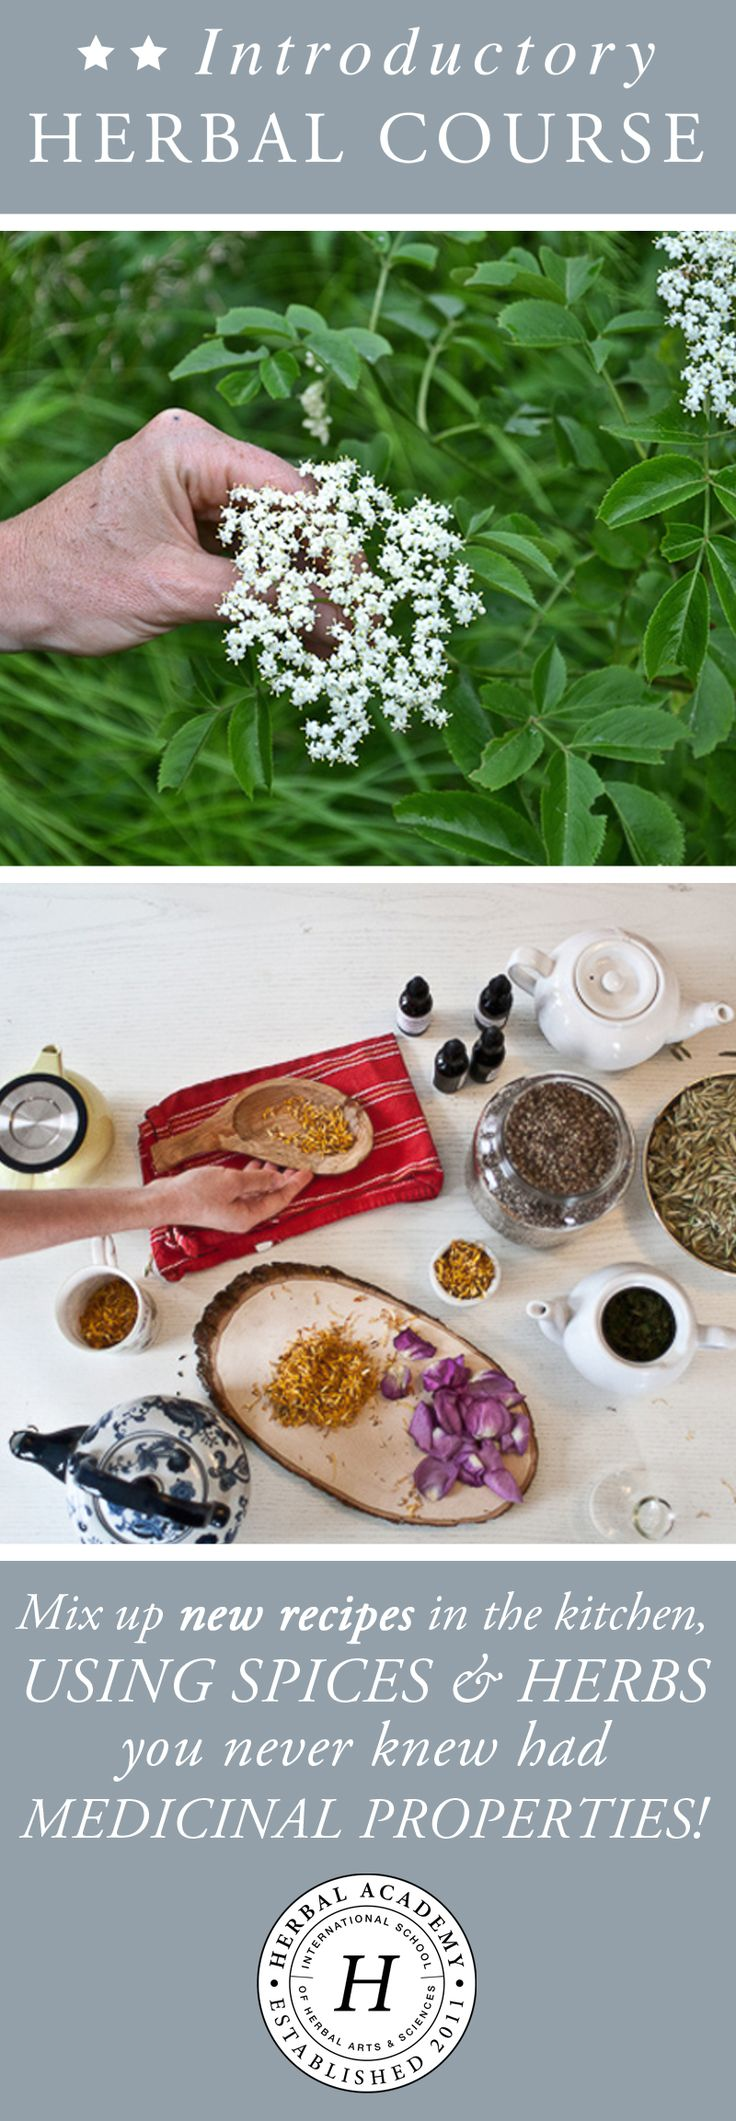 Have you ever wanted to study herbalism? The Herbal Academy's Introductory Herbal Course offers an affordable and convenient online self-paced program that give students with little or no herbal experience a glimpse into the world of herbs. Learn herbal basics including how to make remedies with plenty of awesome recipes, properties of herbs, plants to wildcraft, and so much more!